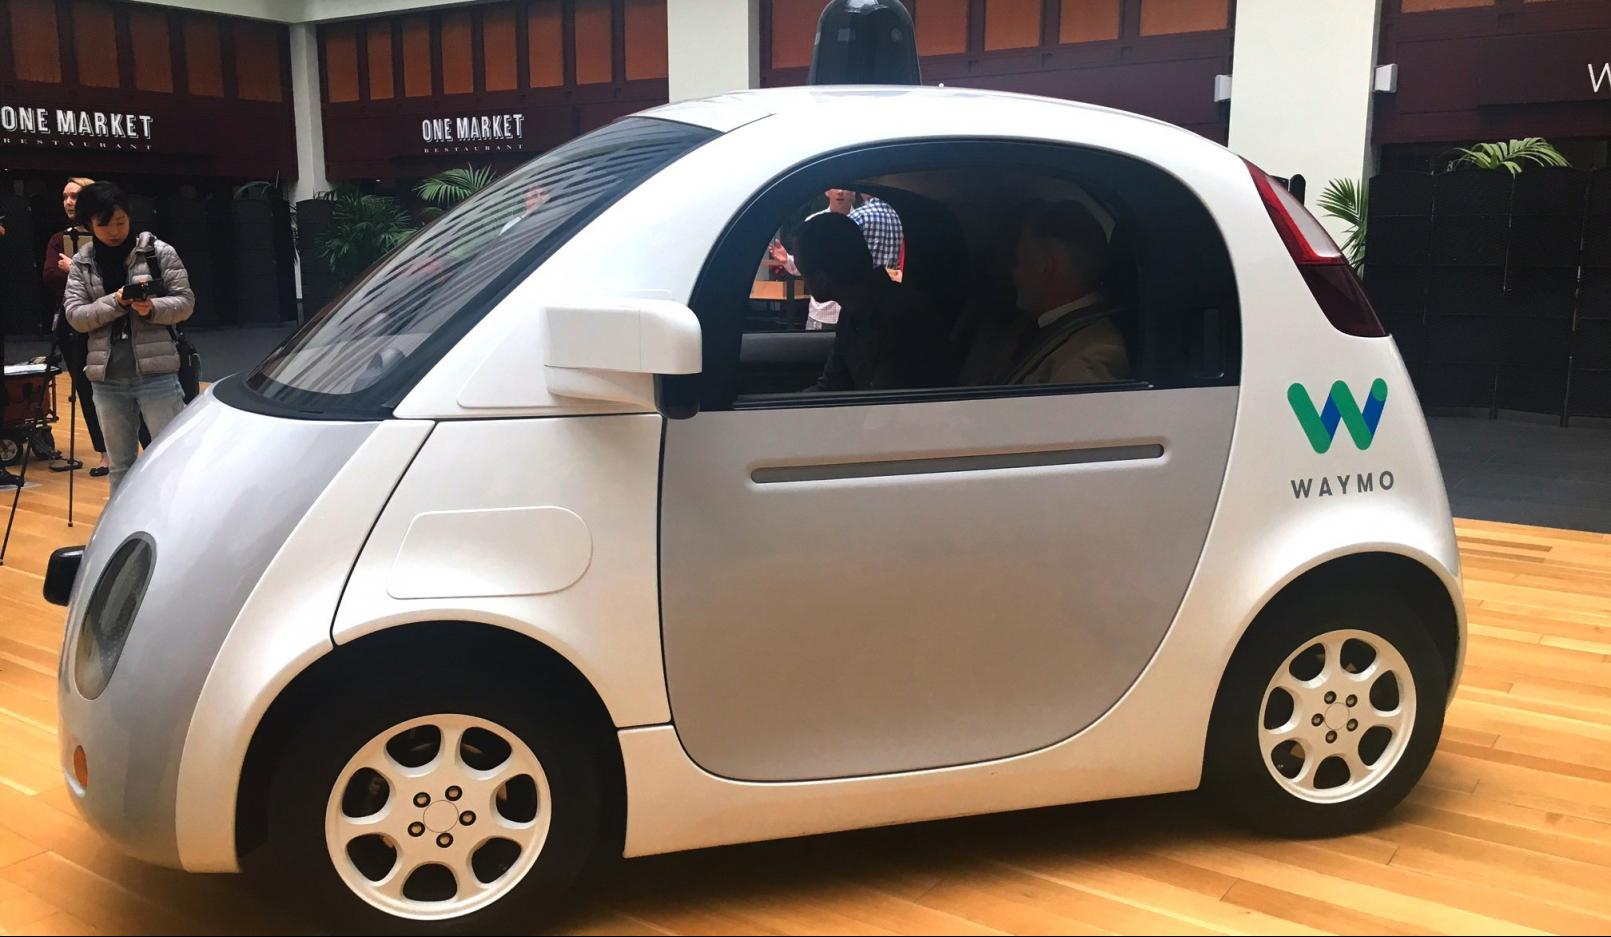 Key Employees of Google's Self-Driving Car Project Quit After Being